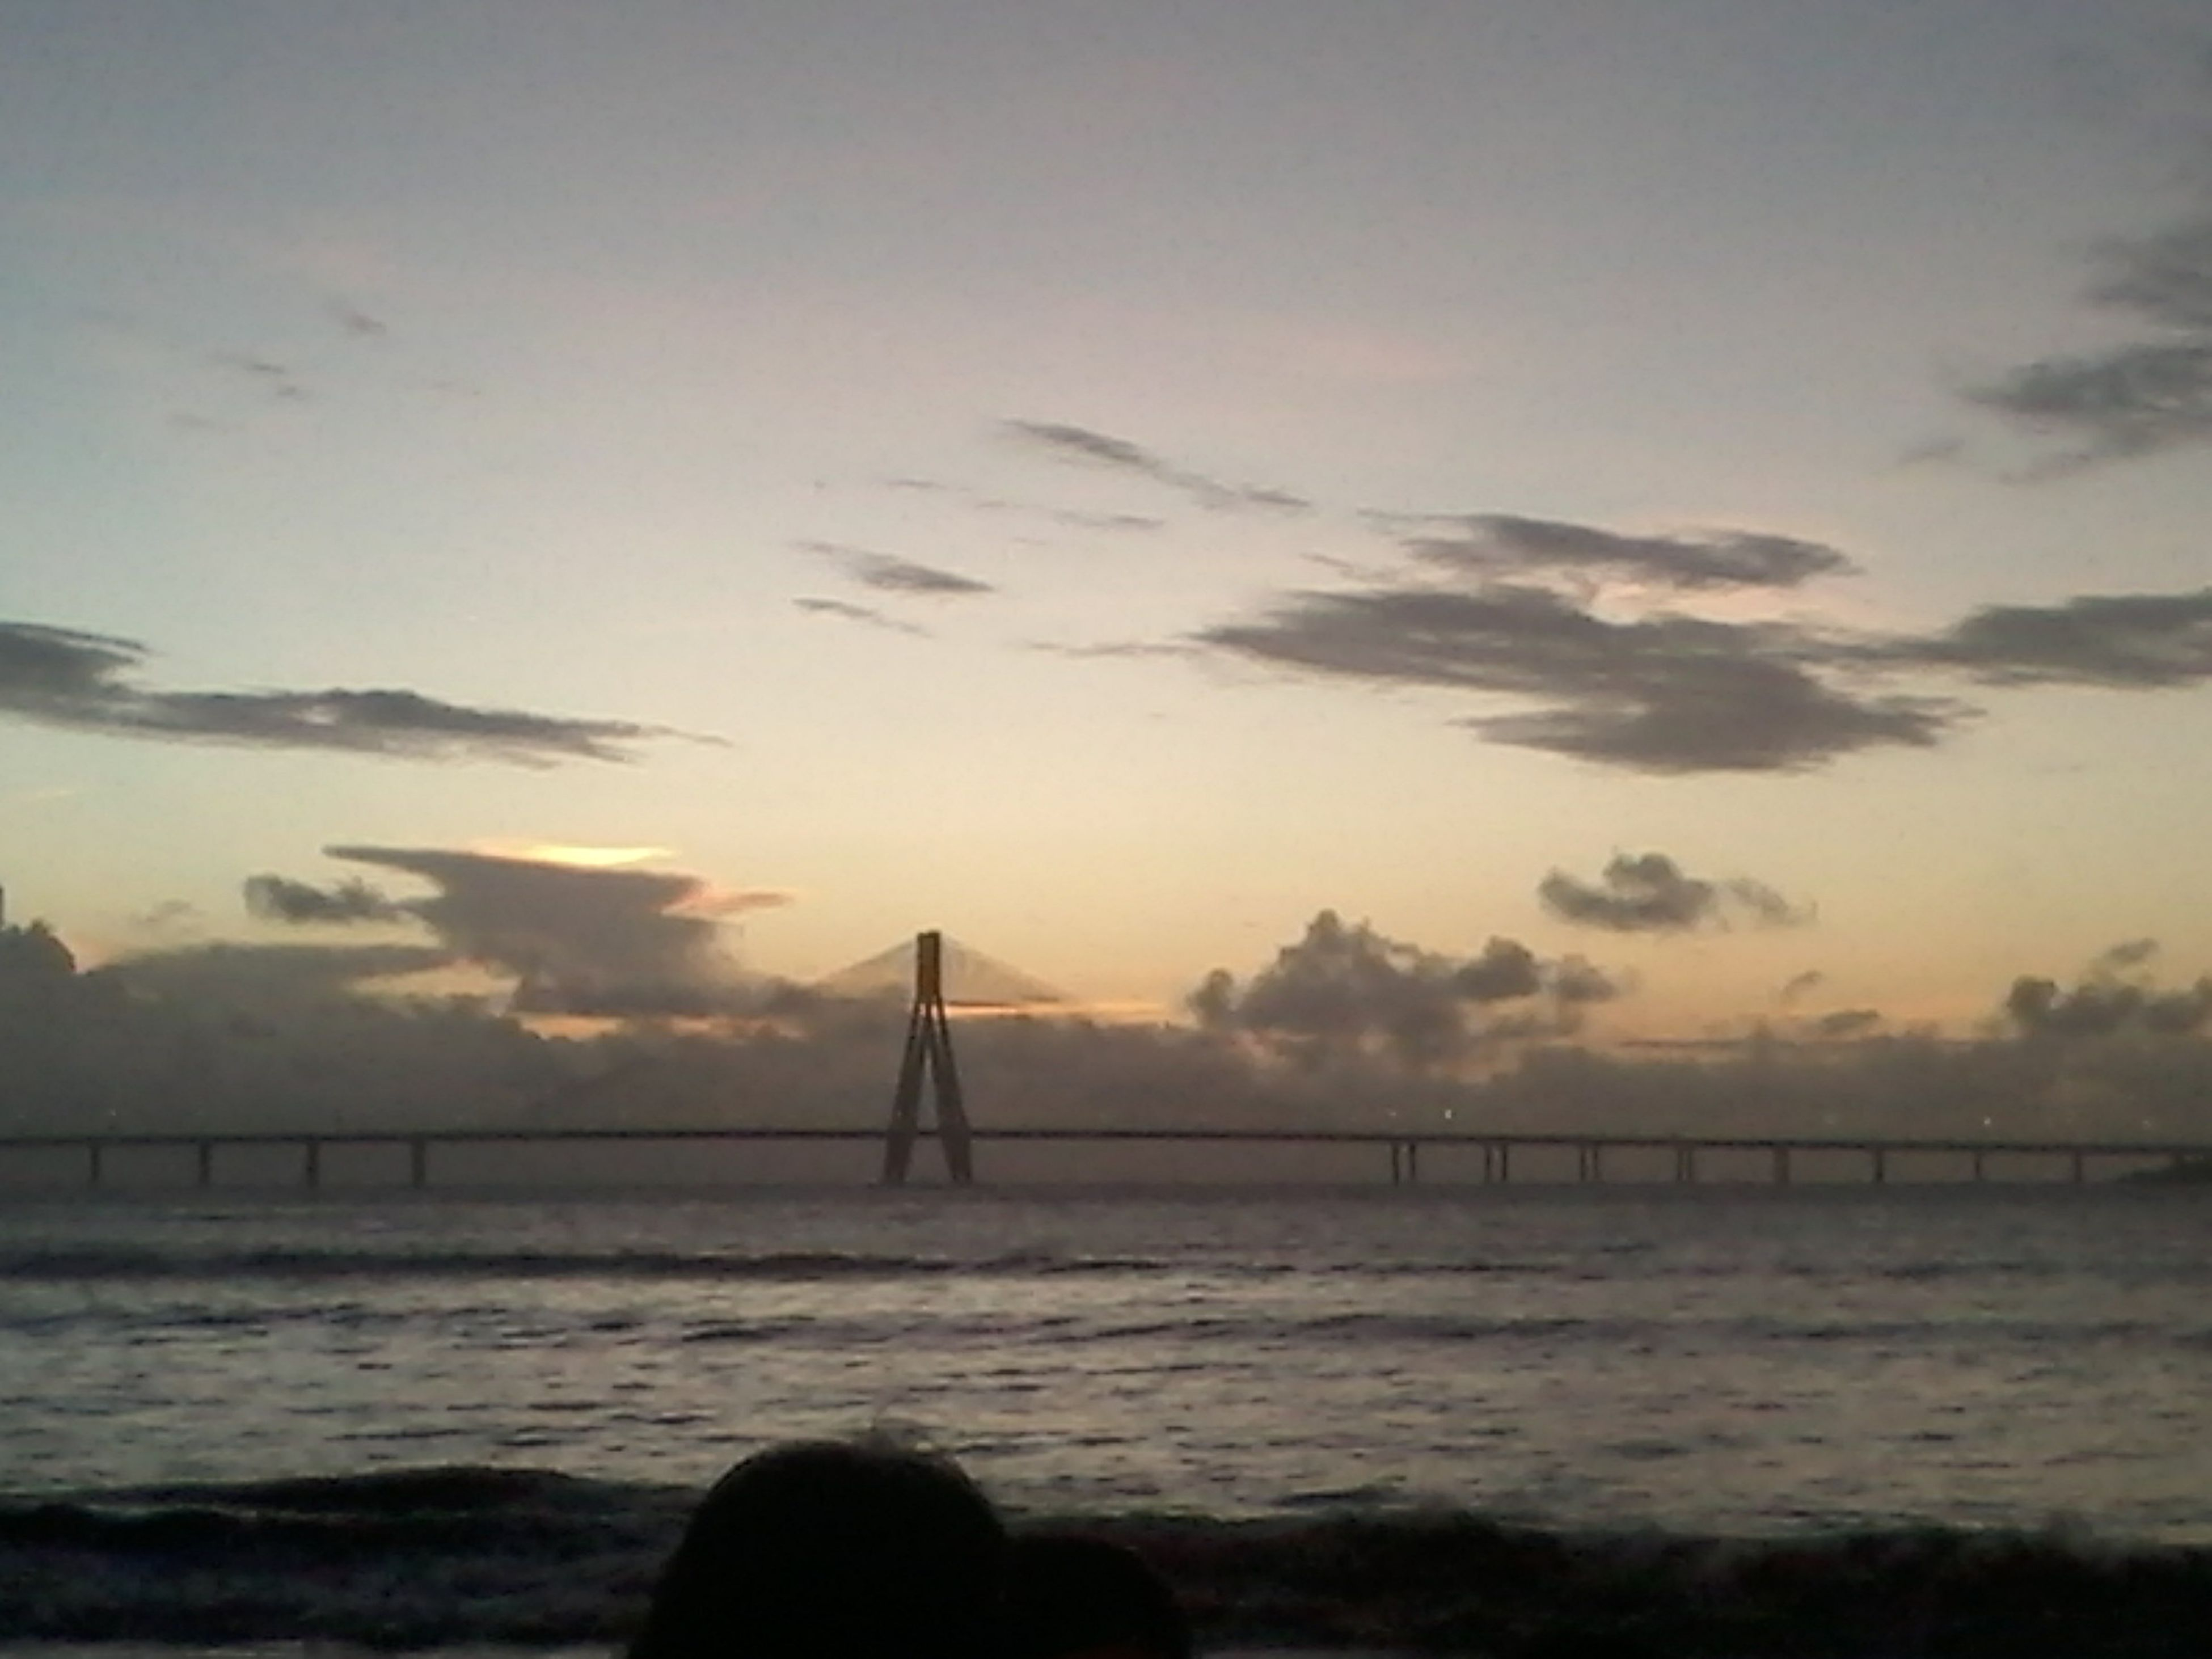 water, sea, sunset, connection, built structure, sky, bridge - man made structure, architecture, scenics, tranquil scene, tranquility, beauty in nature, nature, bridge, silhouette, engineering, horizon over water, suspension bridge, waterfront, rippled